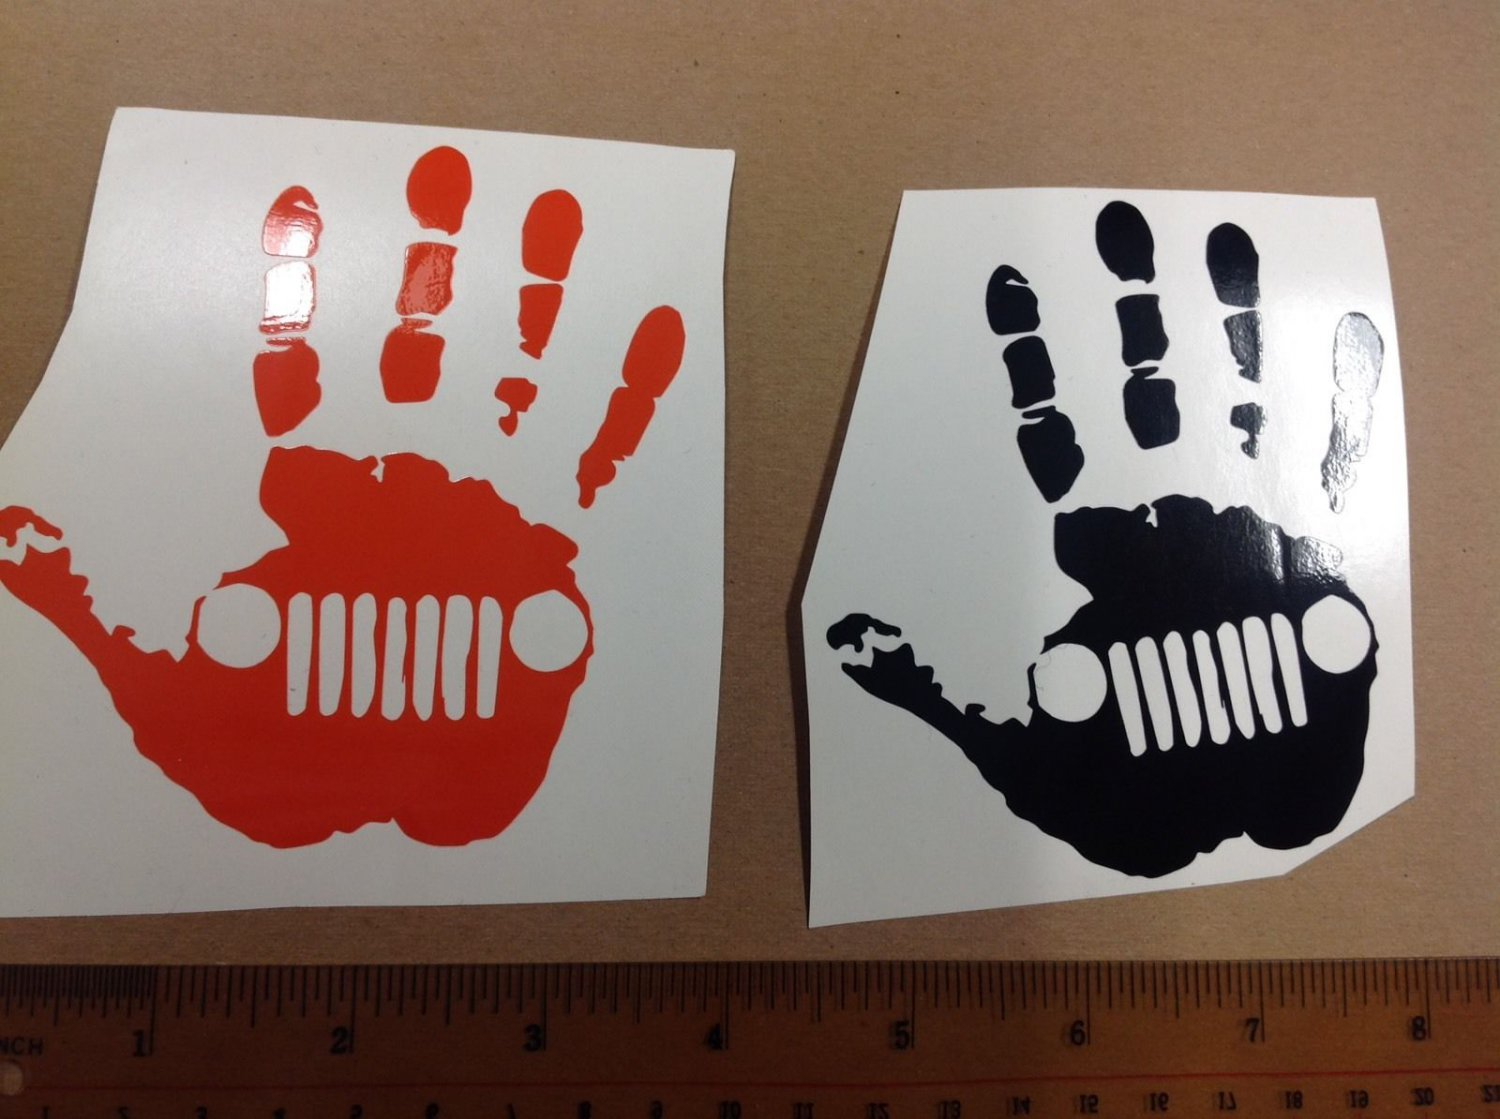 2 Of Jeep wave decal 4.25x3.25 High Quality Sticker Color: Black / Orange